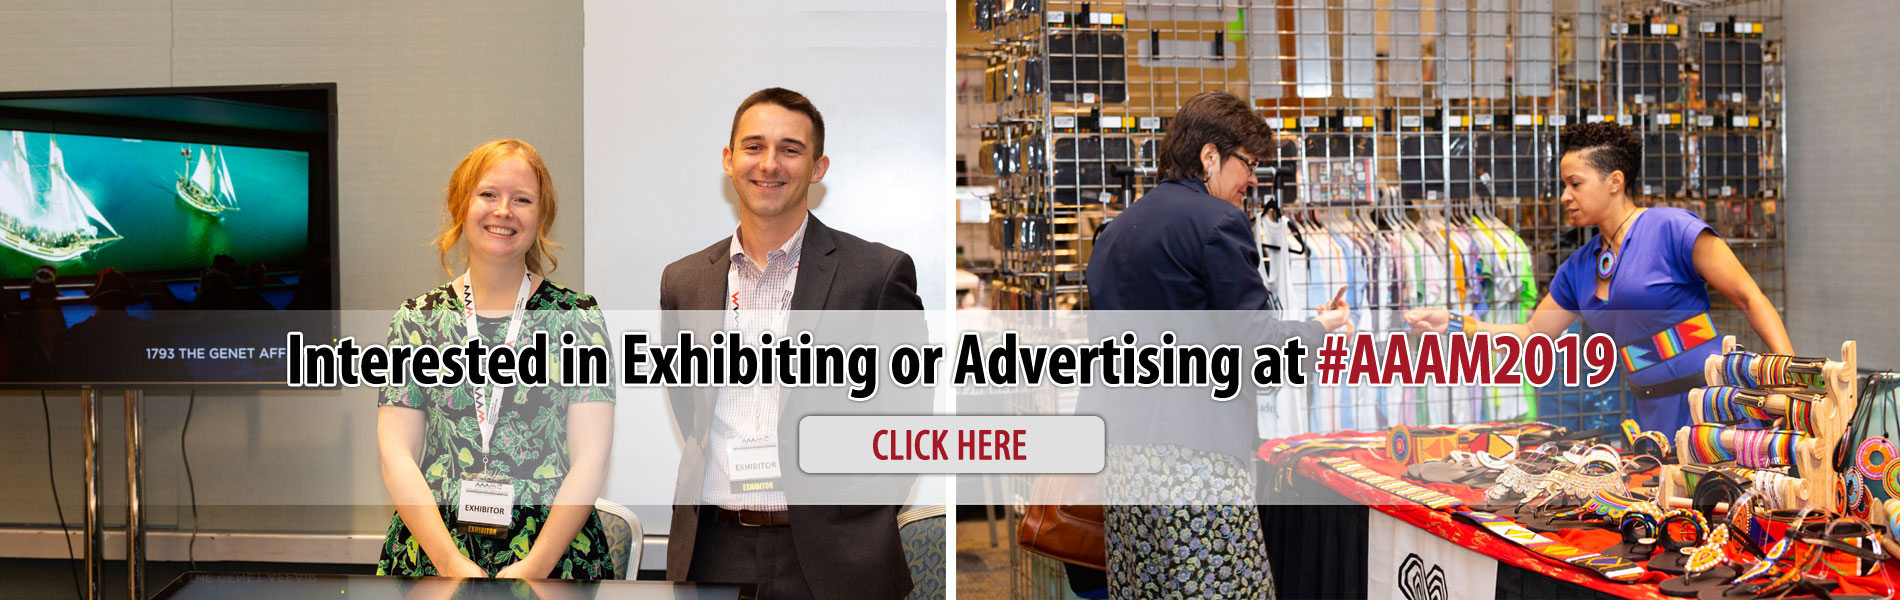 AAAM Conference vending and advertising opportunities